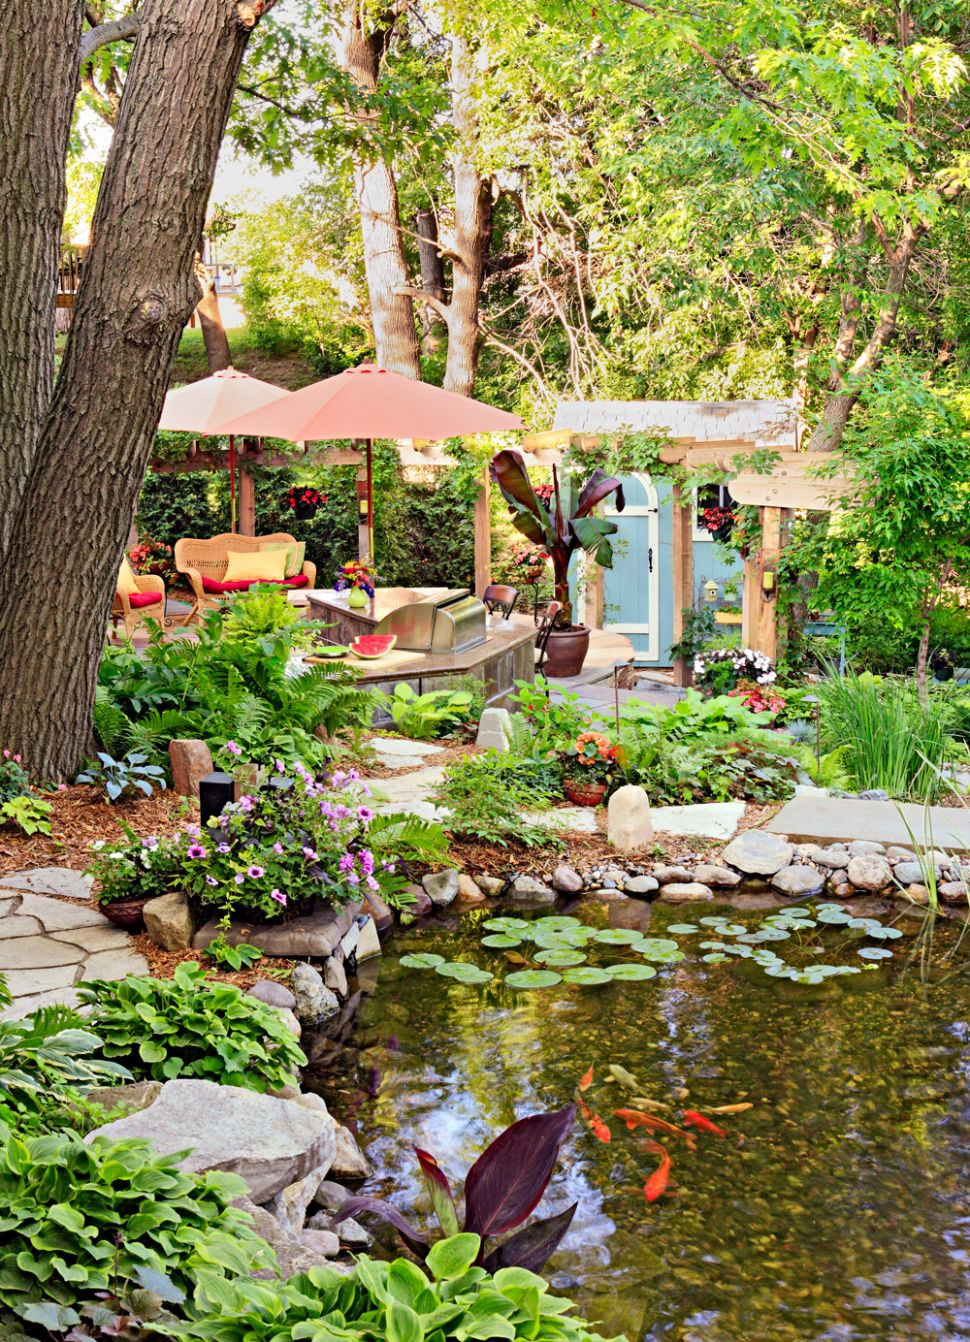 How to Make Your Backyard a Vacation Oasis | Midwest Living